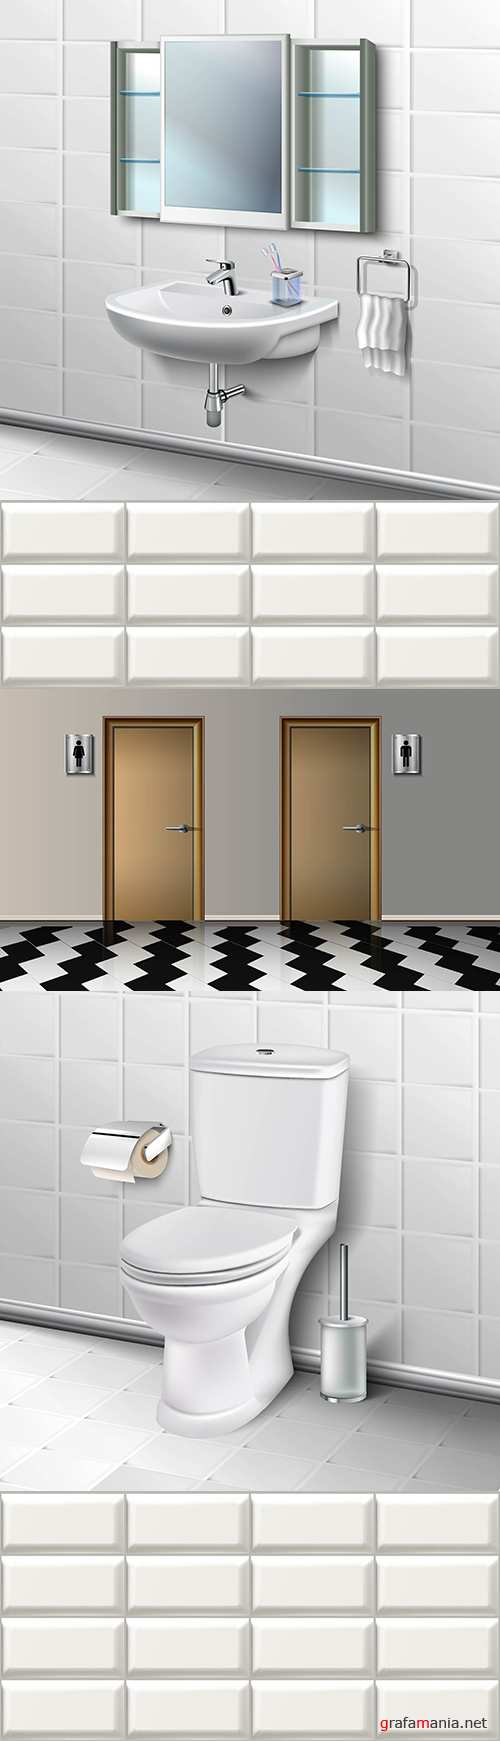 Bathroom and toilet with toilet paper interior illustration